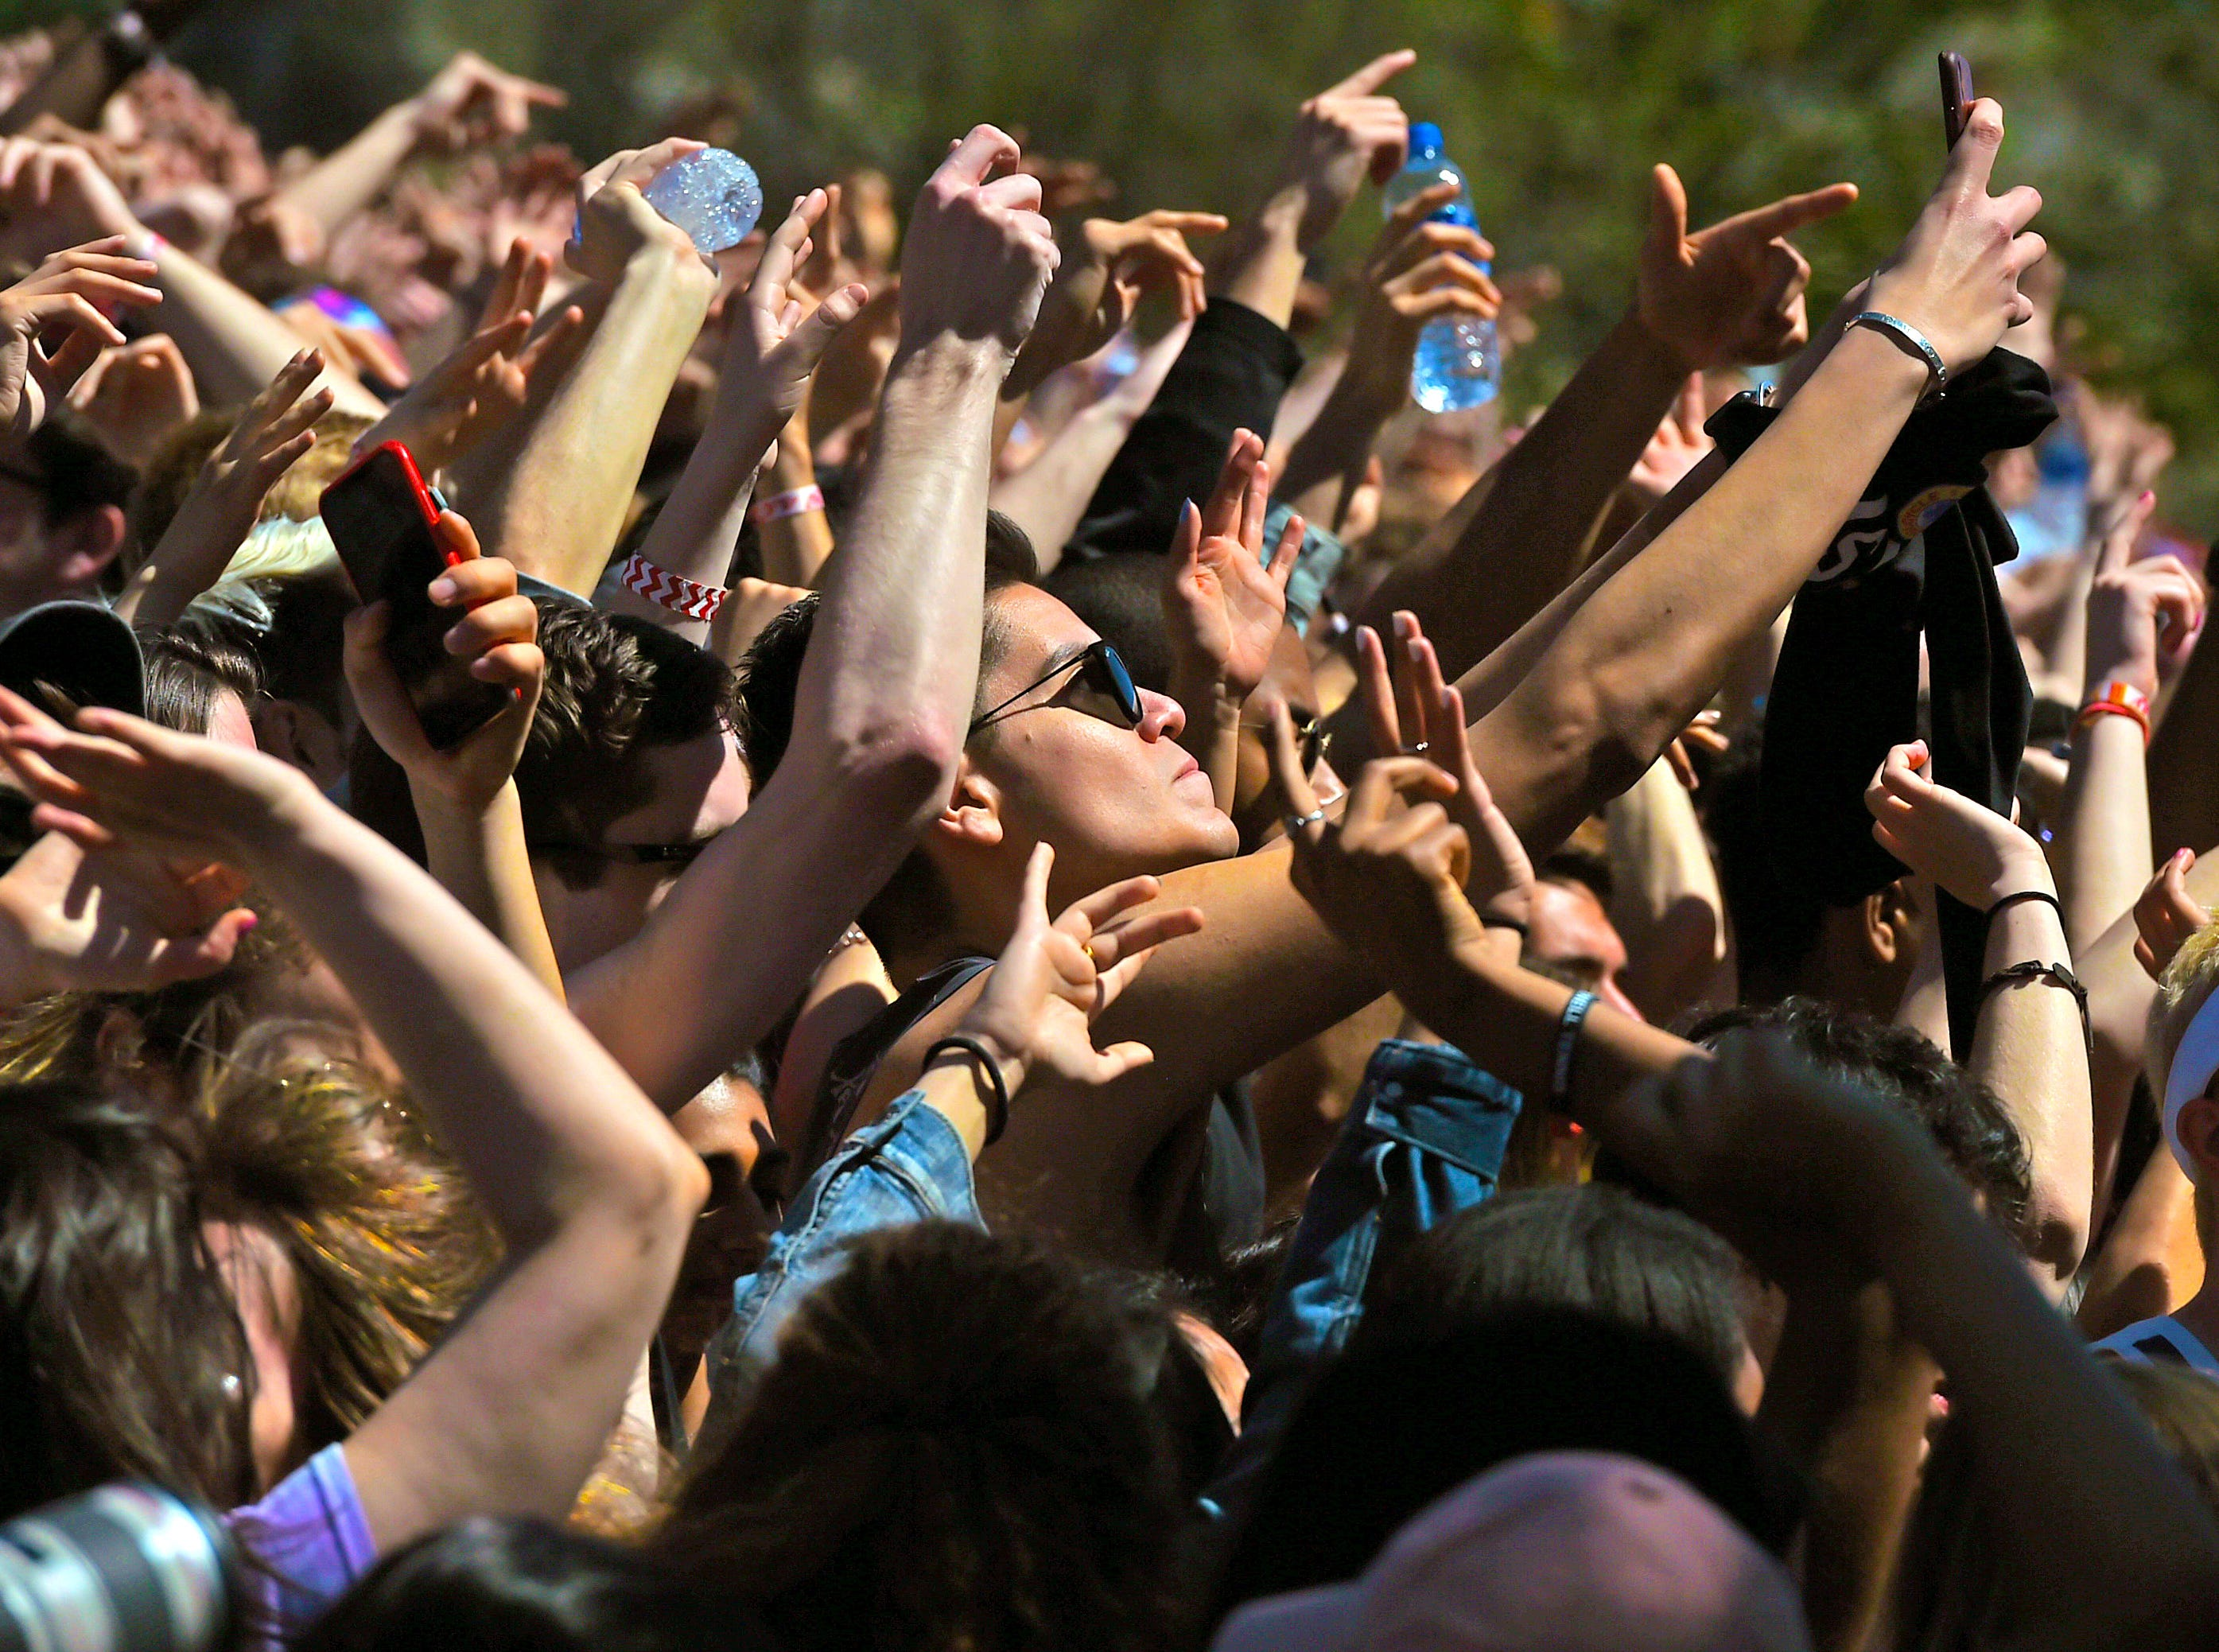 Slope Day 2019 at Cornell University featured music by Steve Aoki, Cousin Stizz, and EZI.